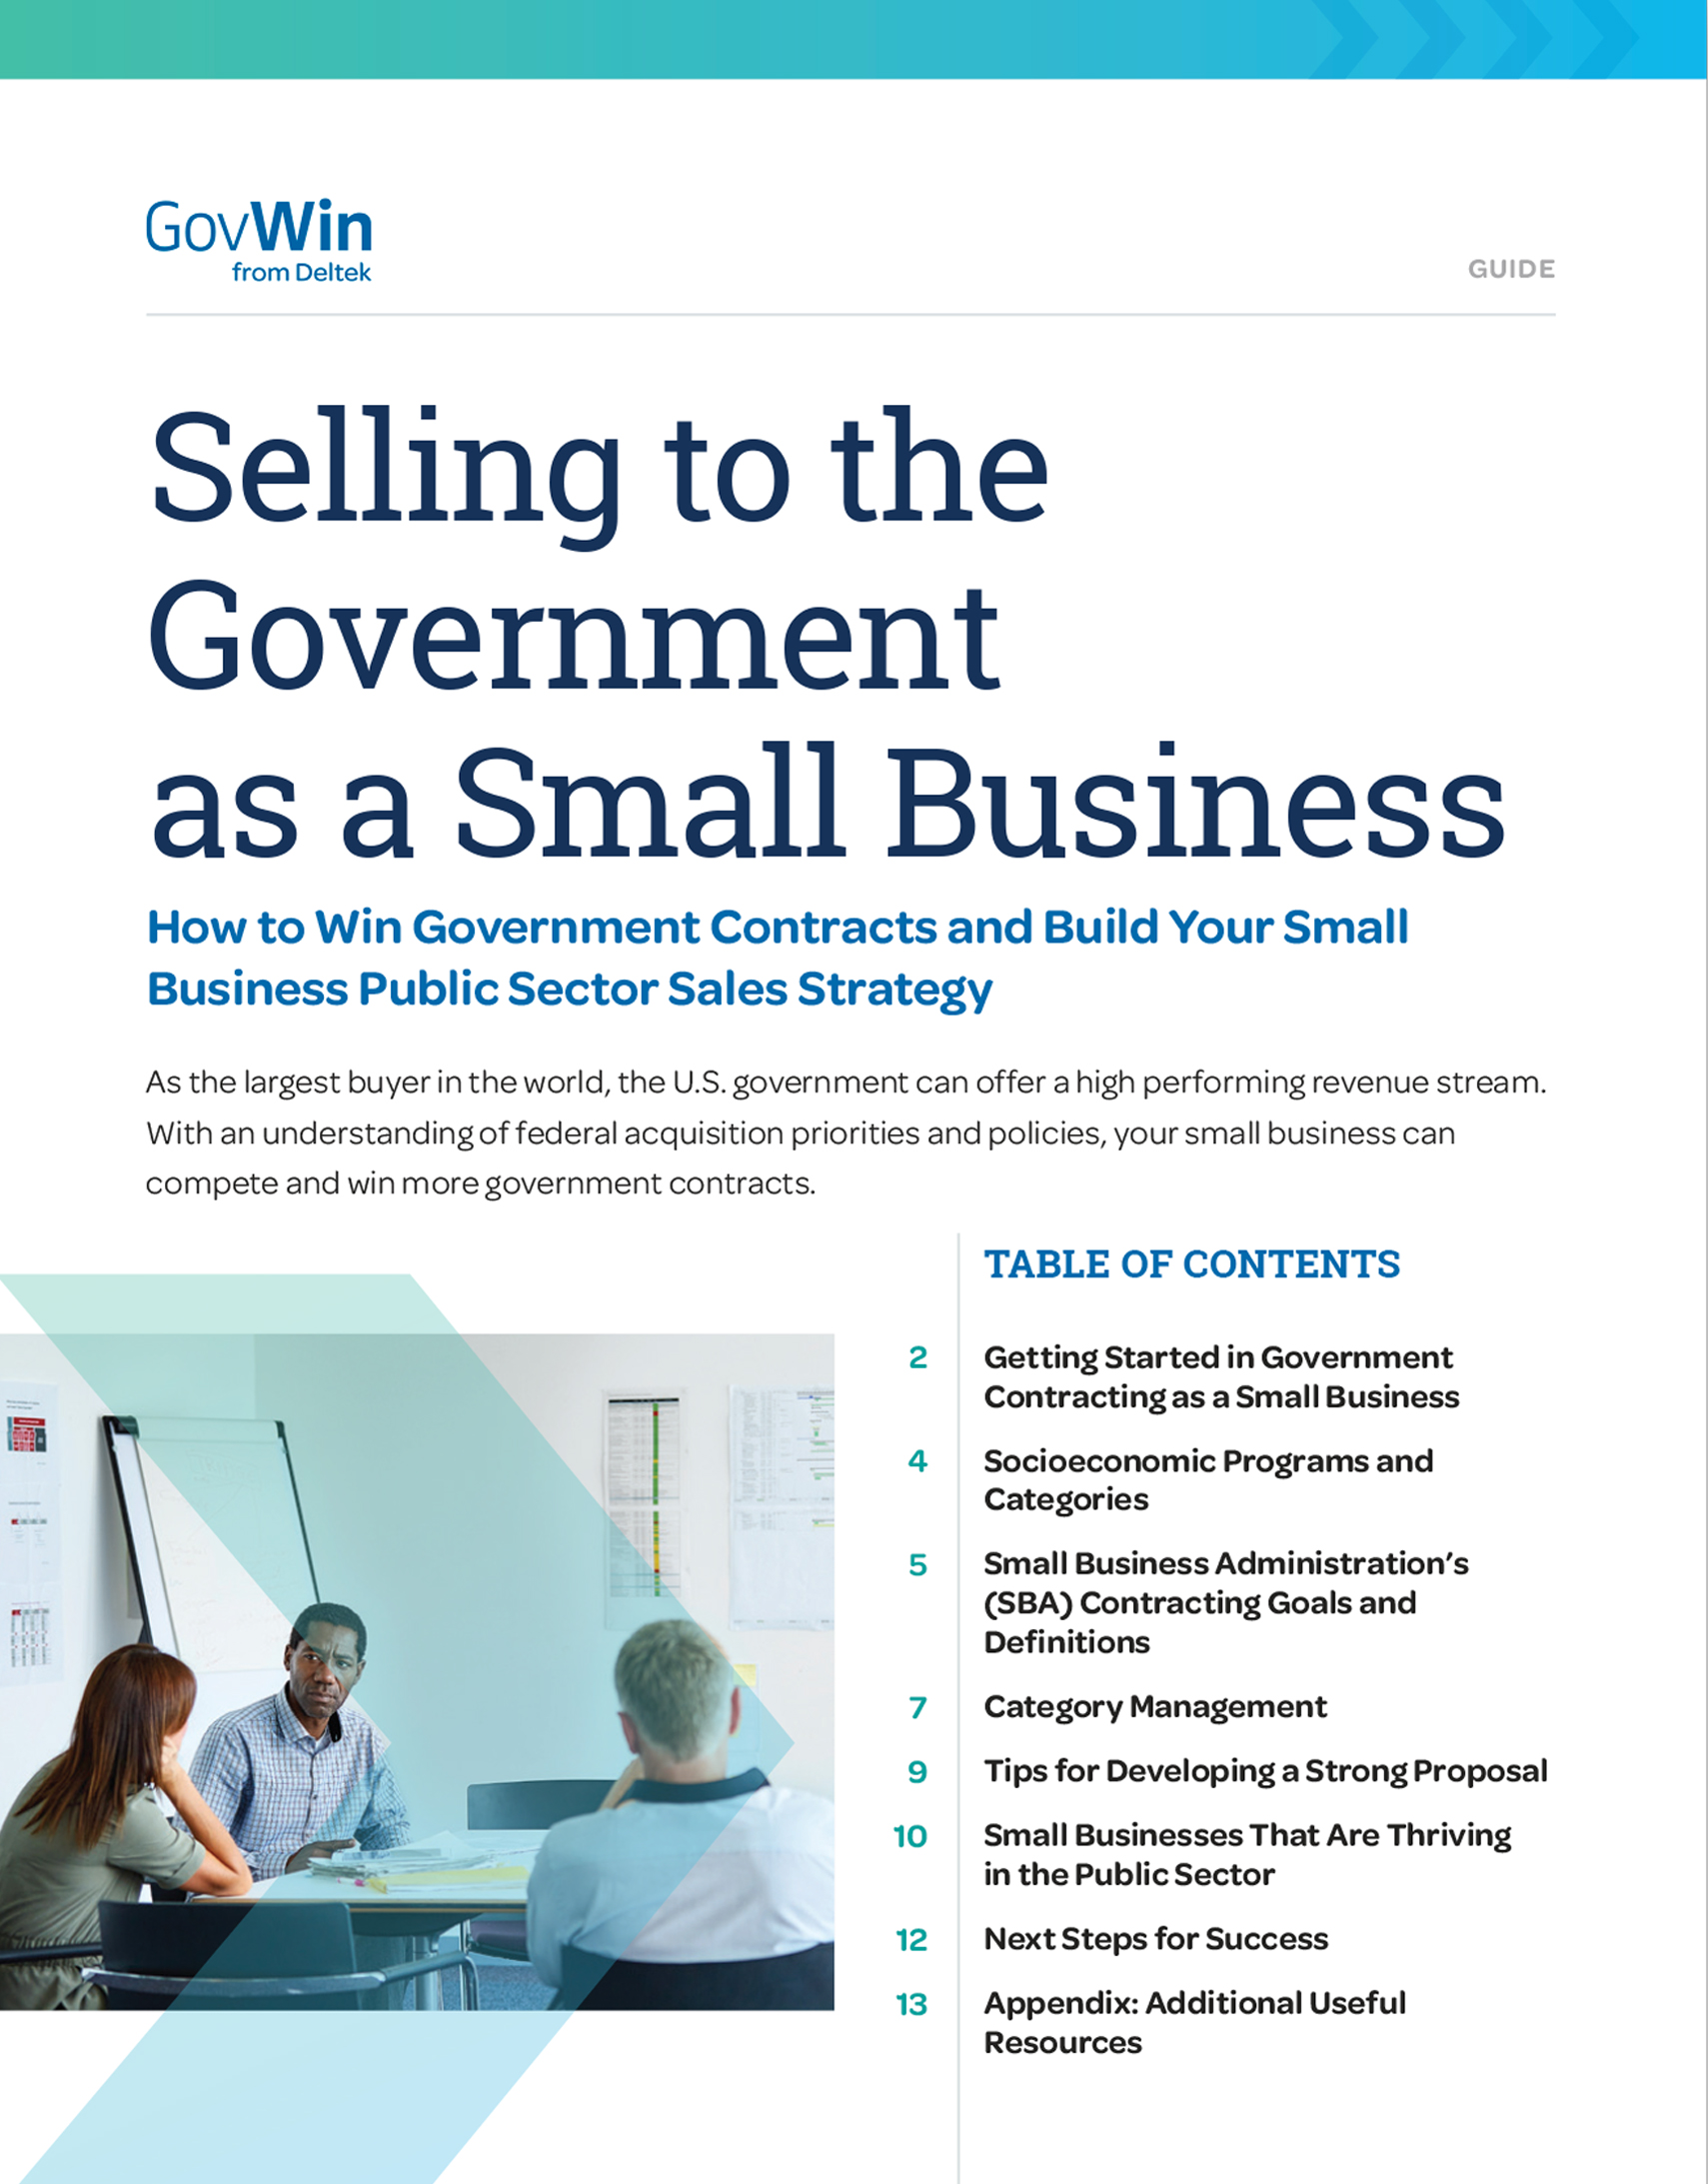 Selling to the Government as a Small Business